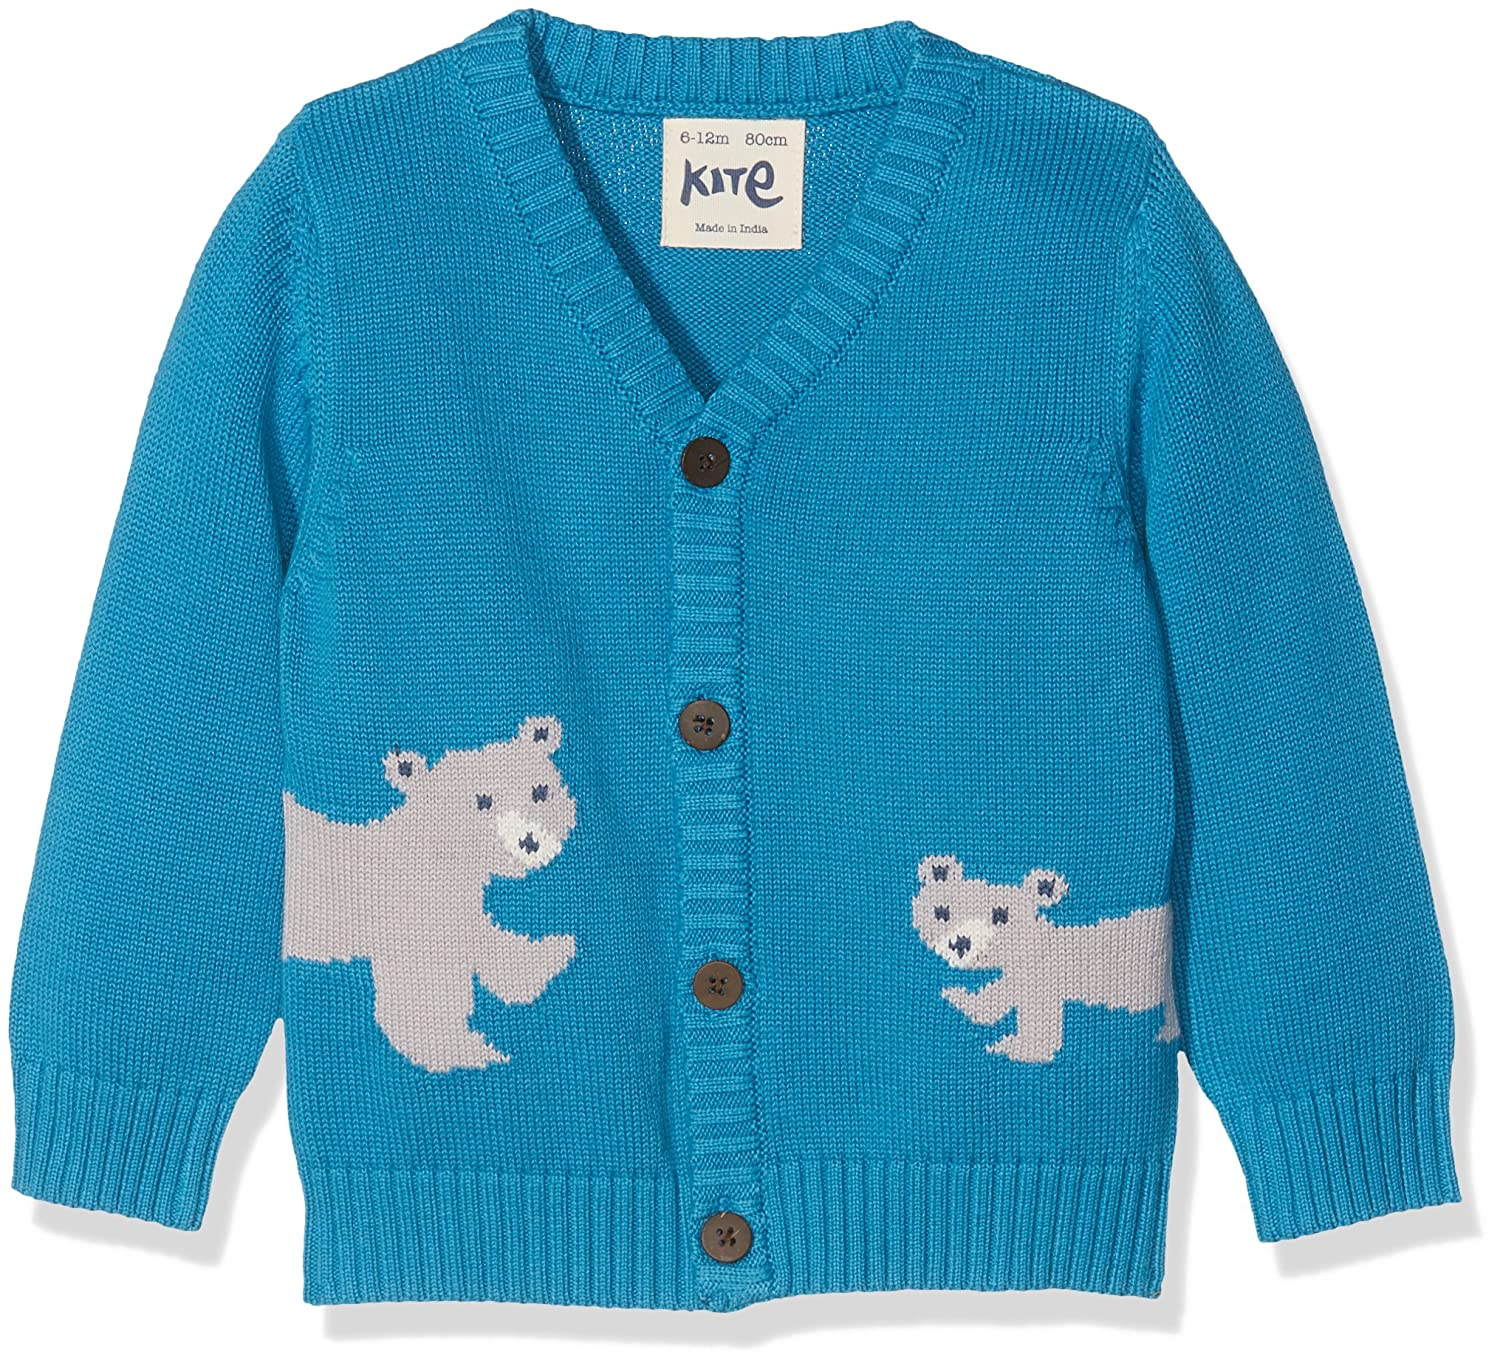 Kite Baby Boys' Polar Bear Cardi Cardigan Blue (Bluejay) 18-24 Months BB947